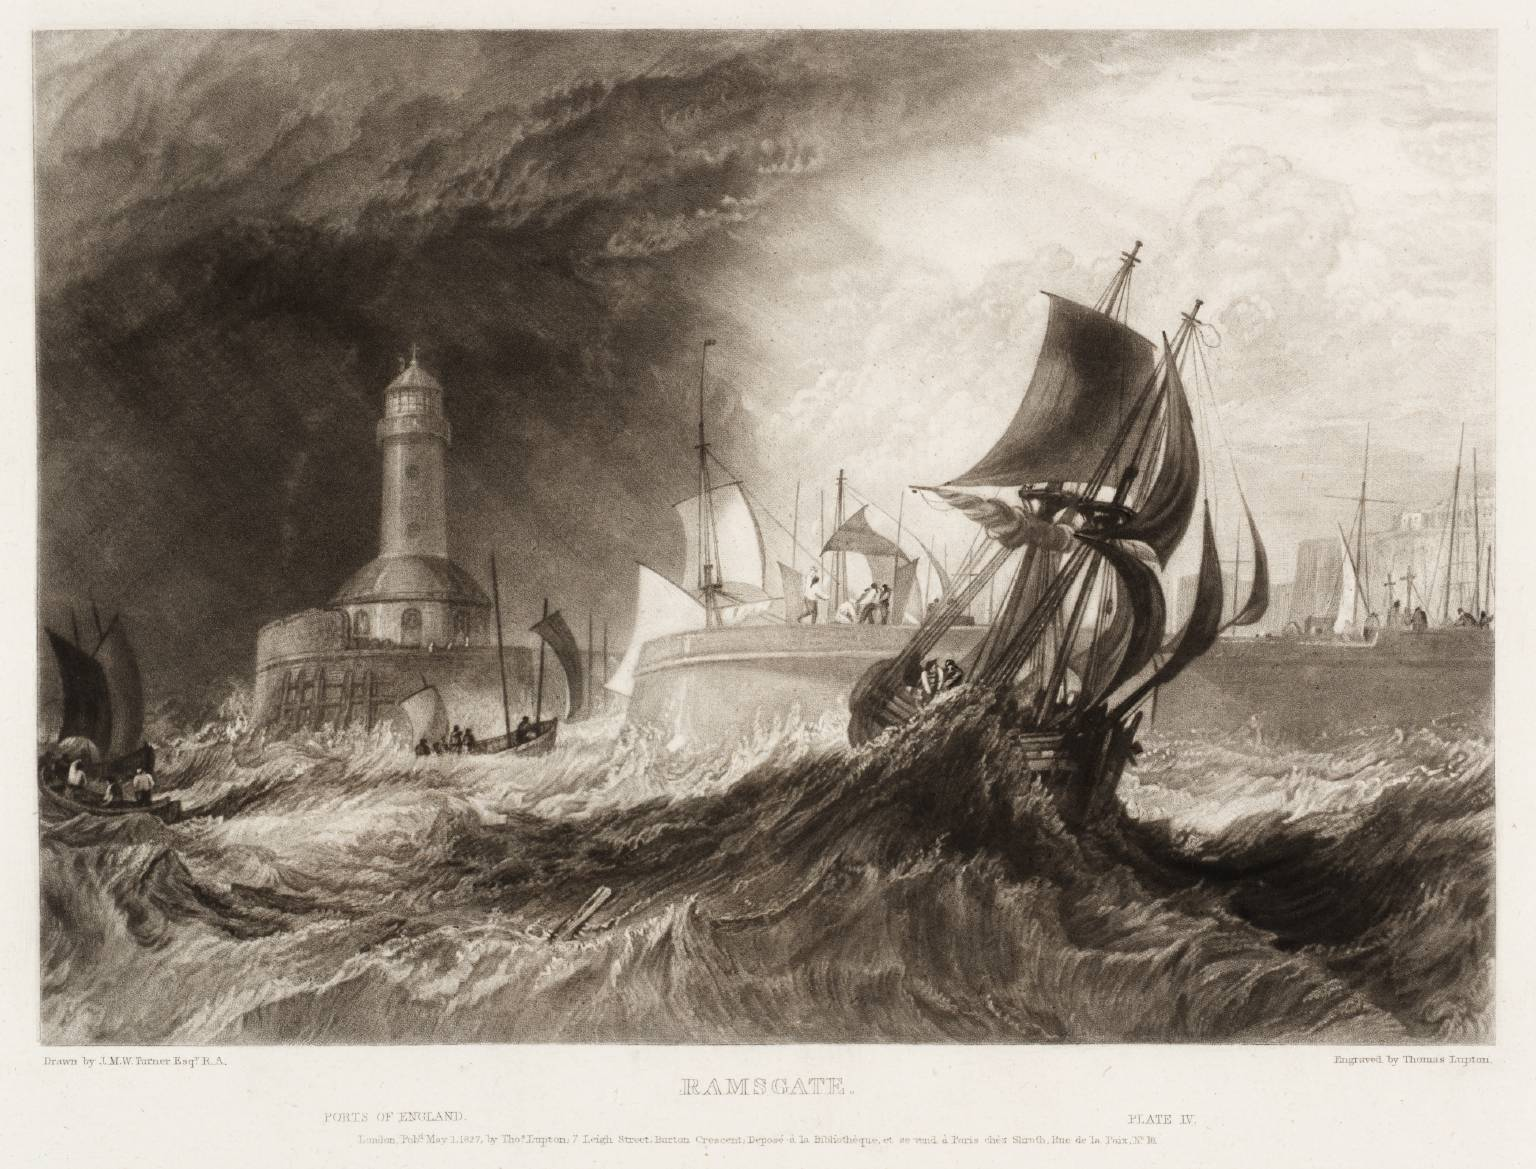 Ramsgate, engraved by Thomas Lupton 1827 Joseph Mallord William Turner 1775-1851 Purchased 1986 http://www.tate.org.uk/art/work/T04831